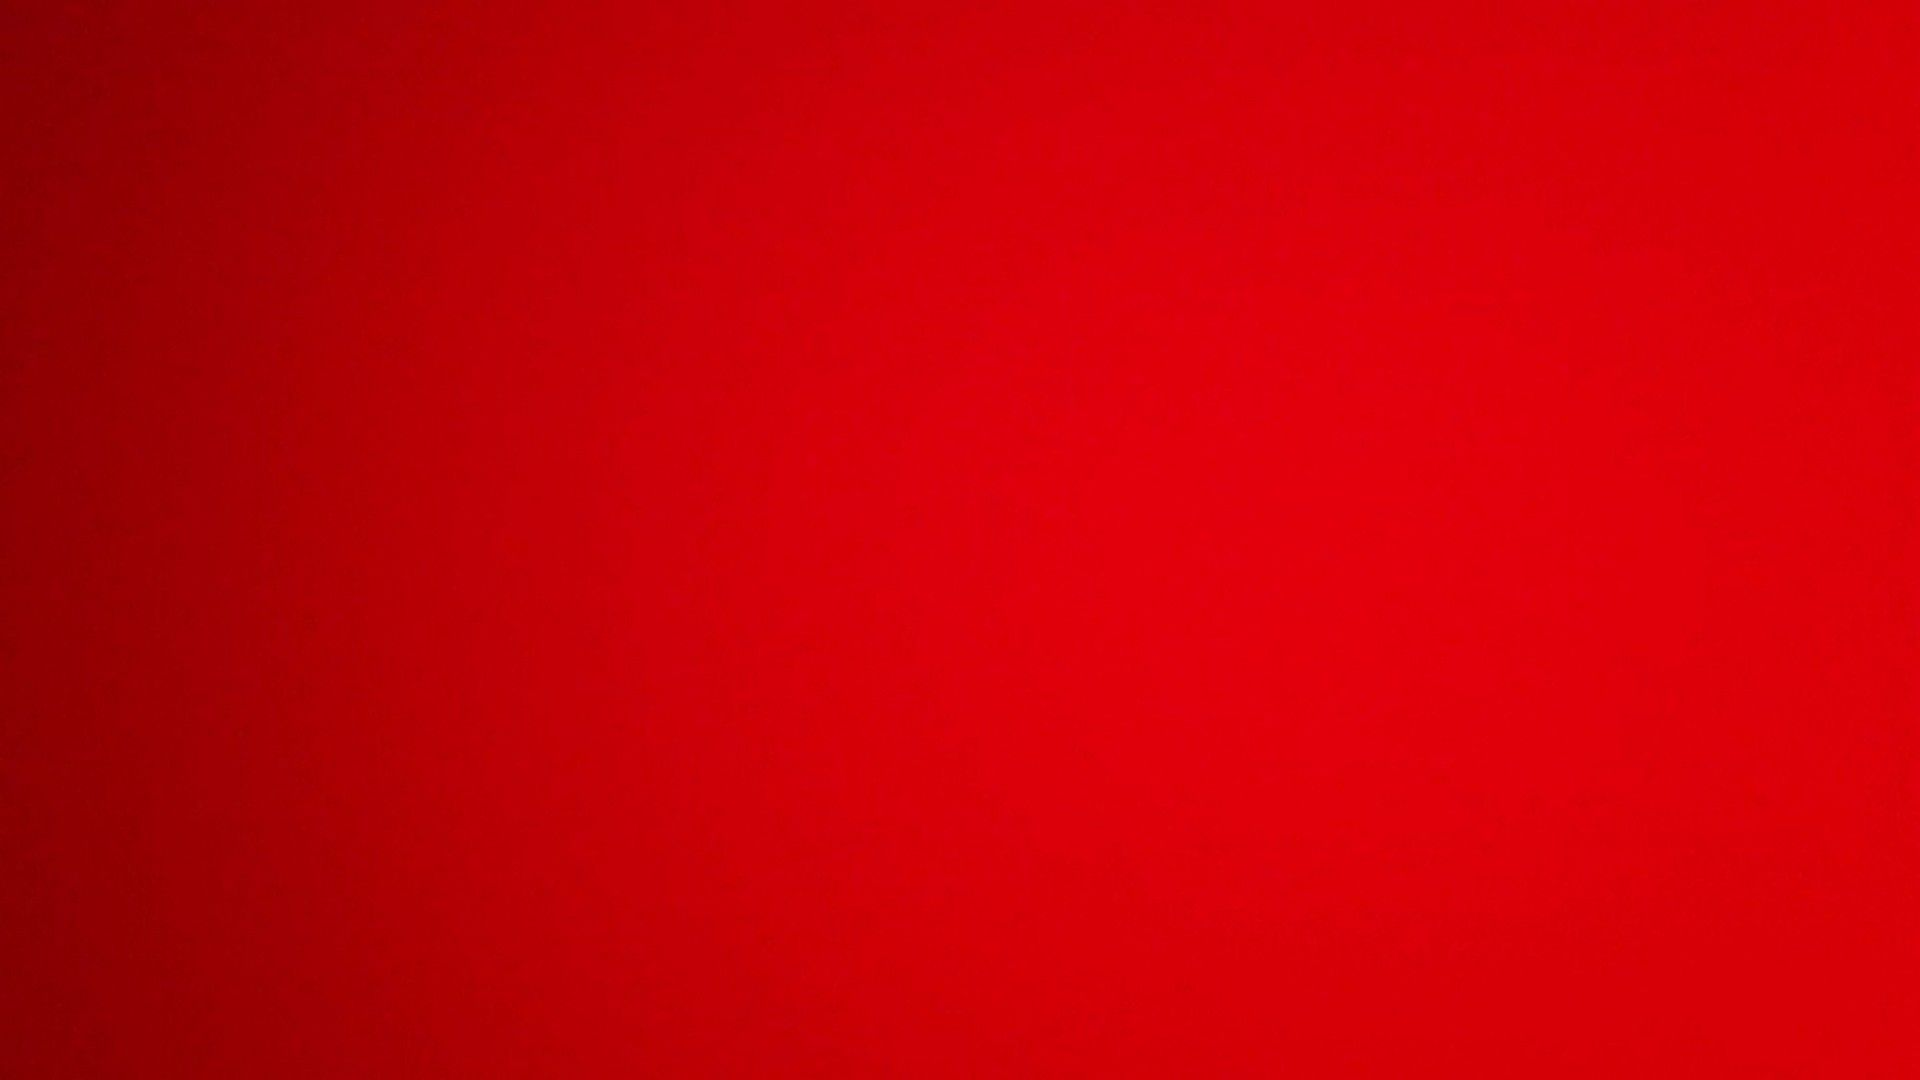 Red Background Hd Png Pinterest Colorful Wallpaper Solid